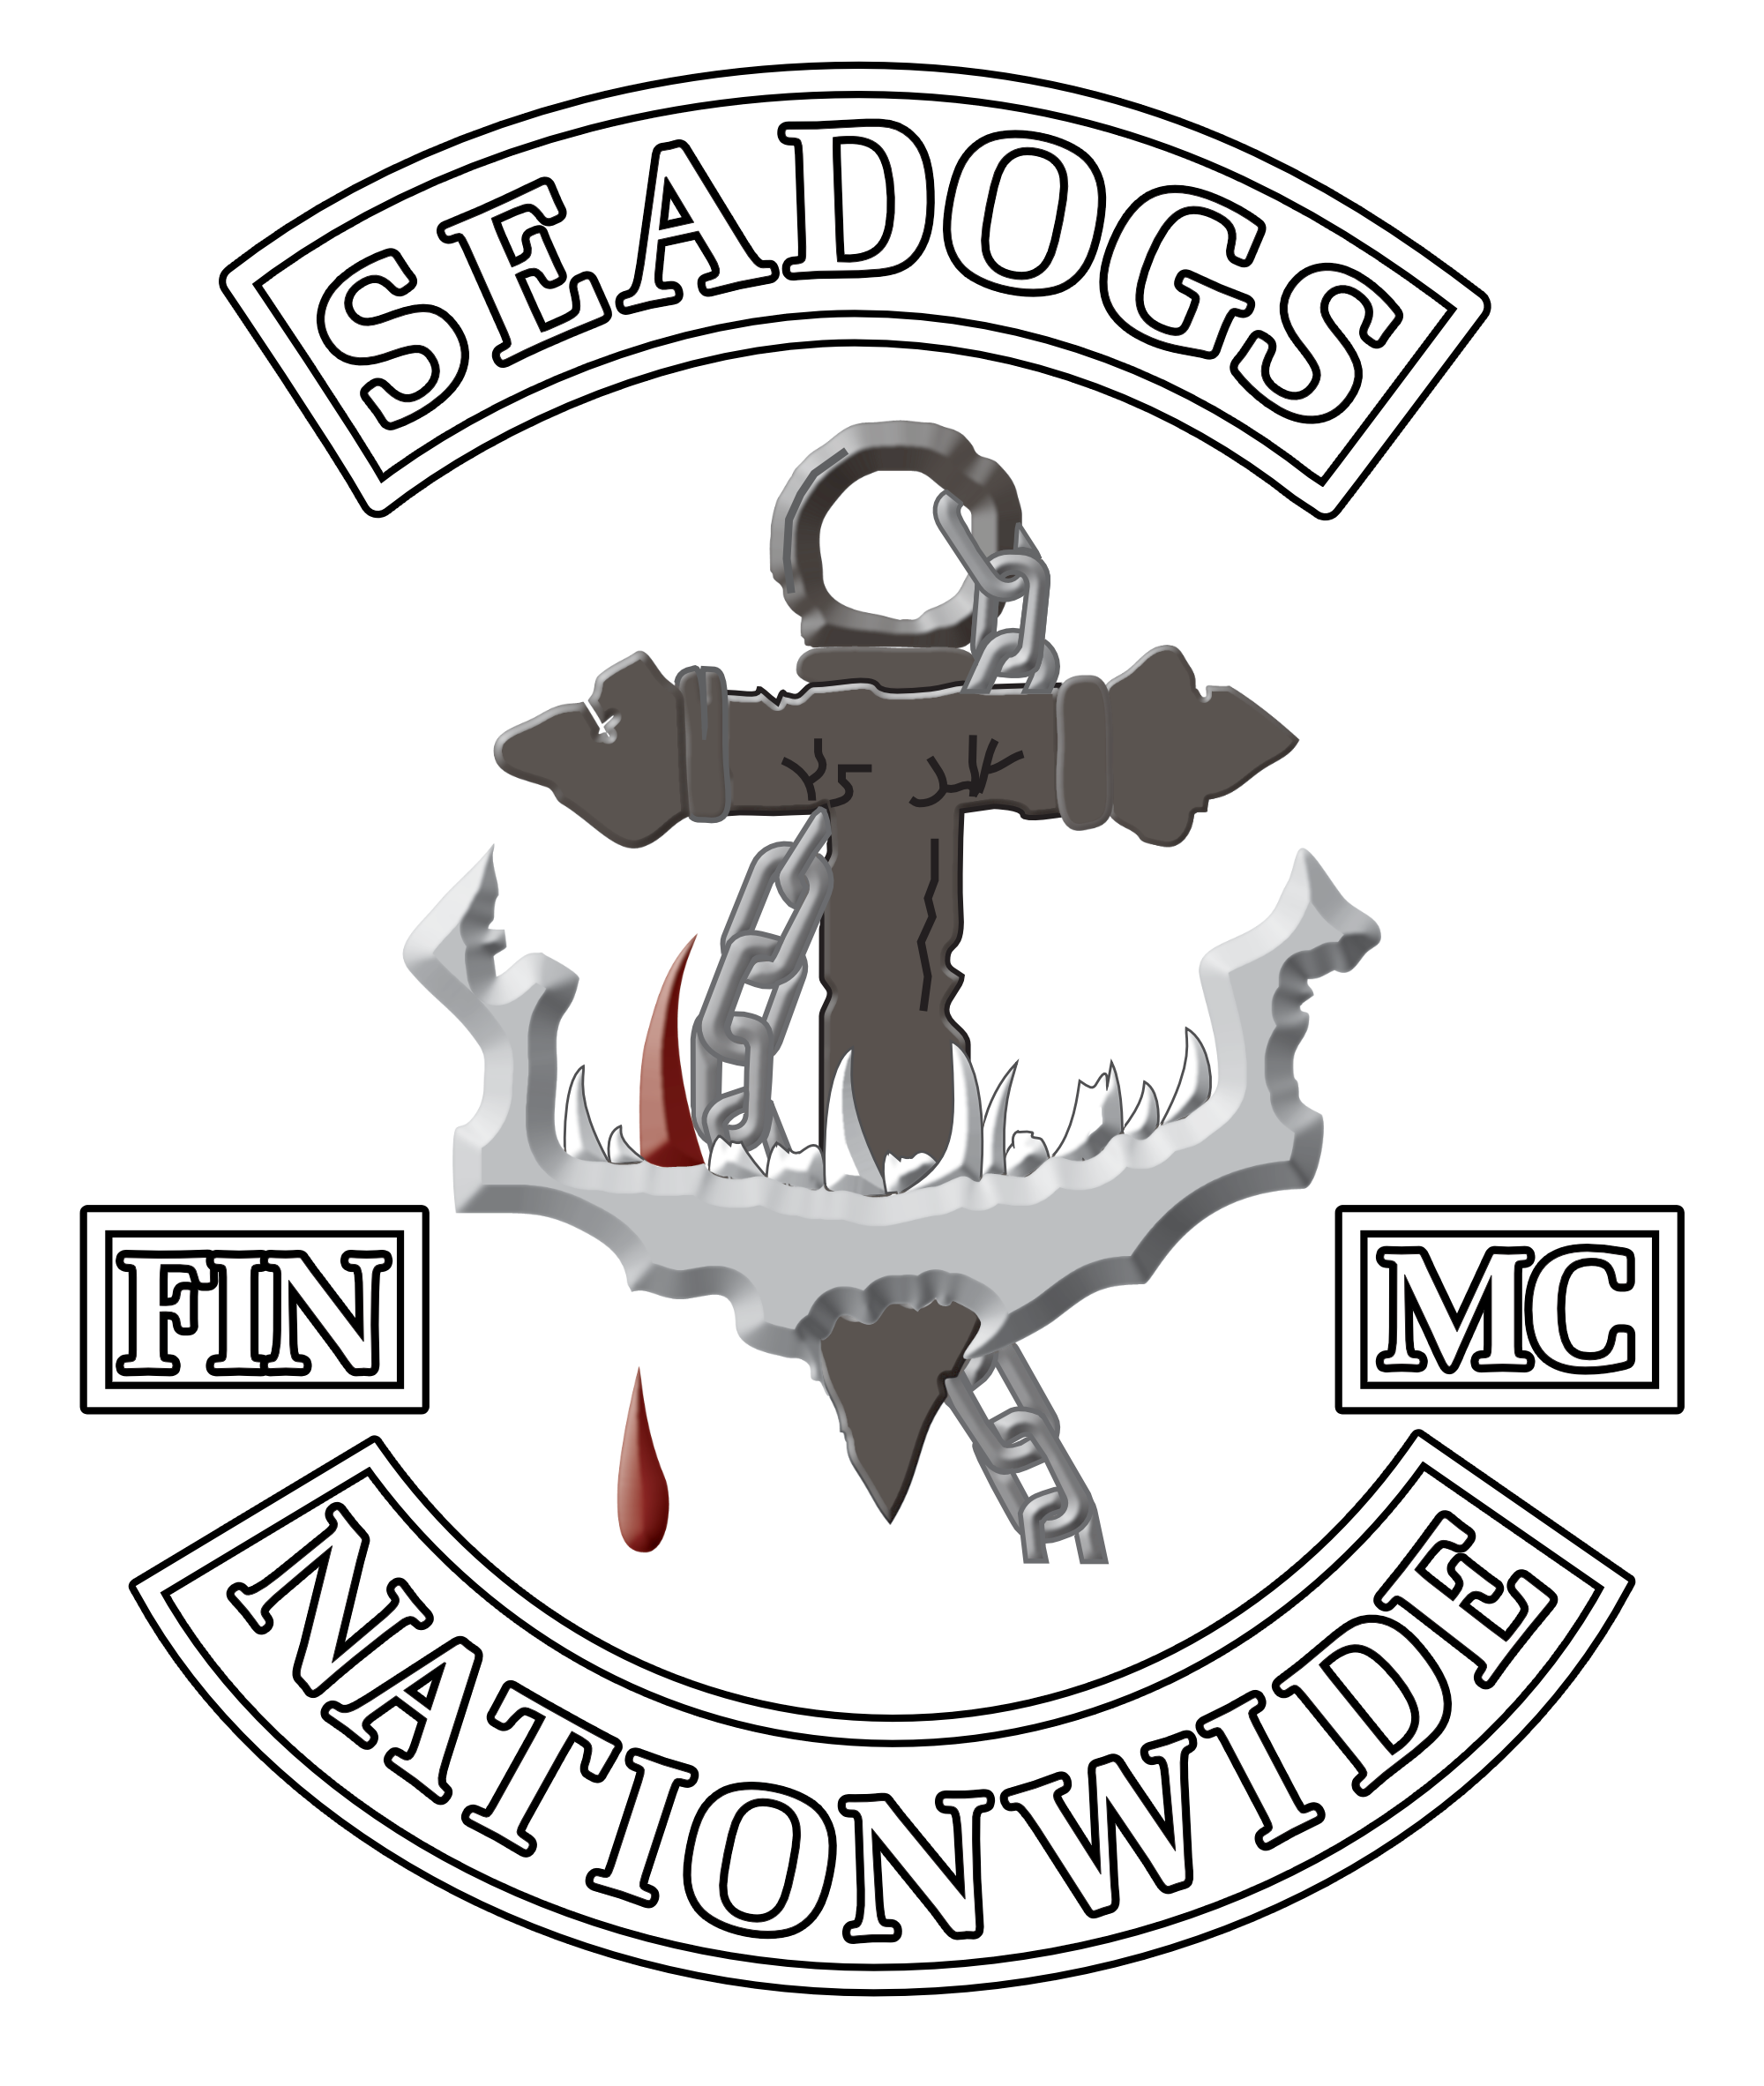 Seadogs Motorcycle Club